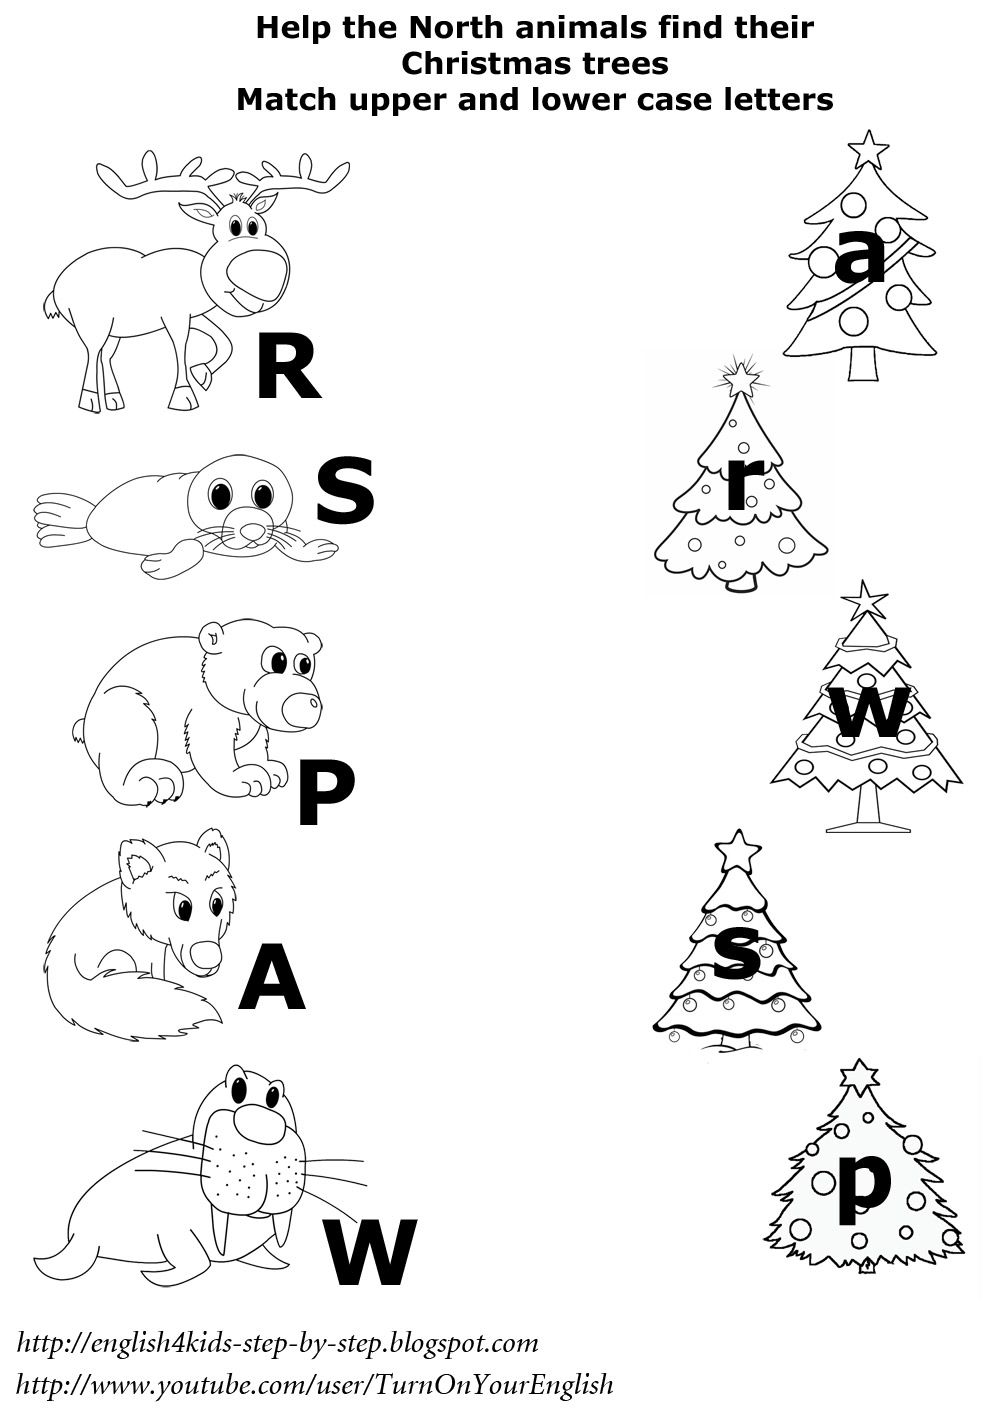 worksheet Winter Worksheets north animals christmas worksheetmatching upper and lower case lettersesl worksheet